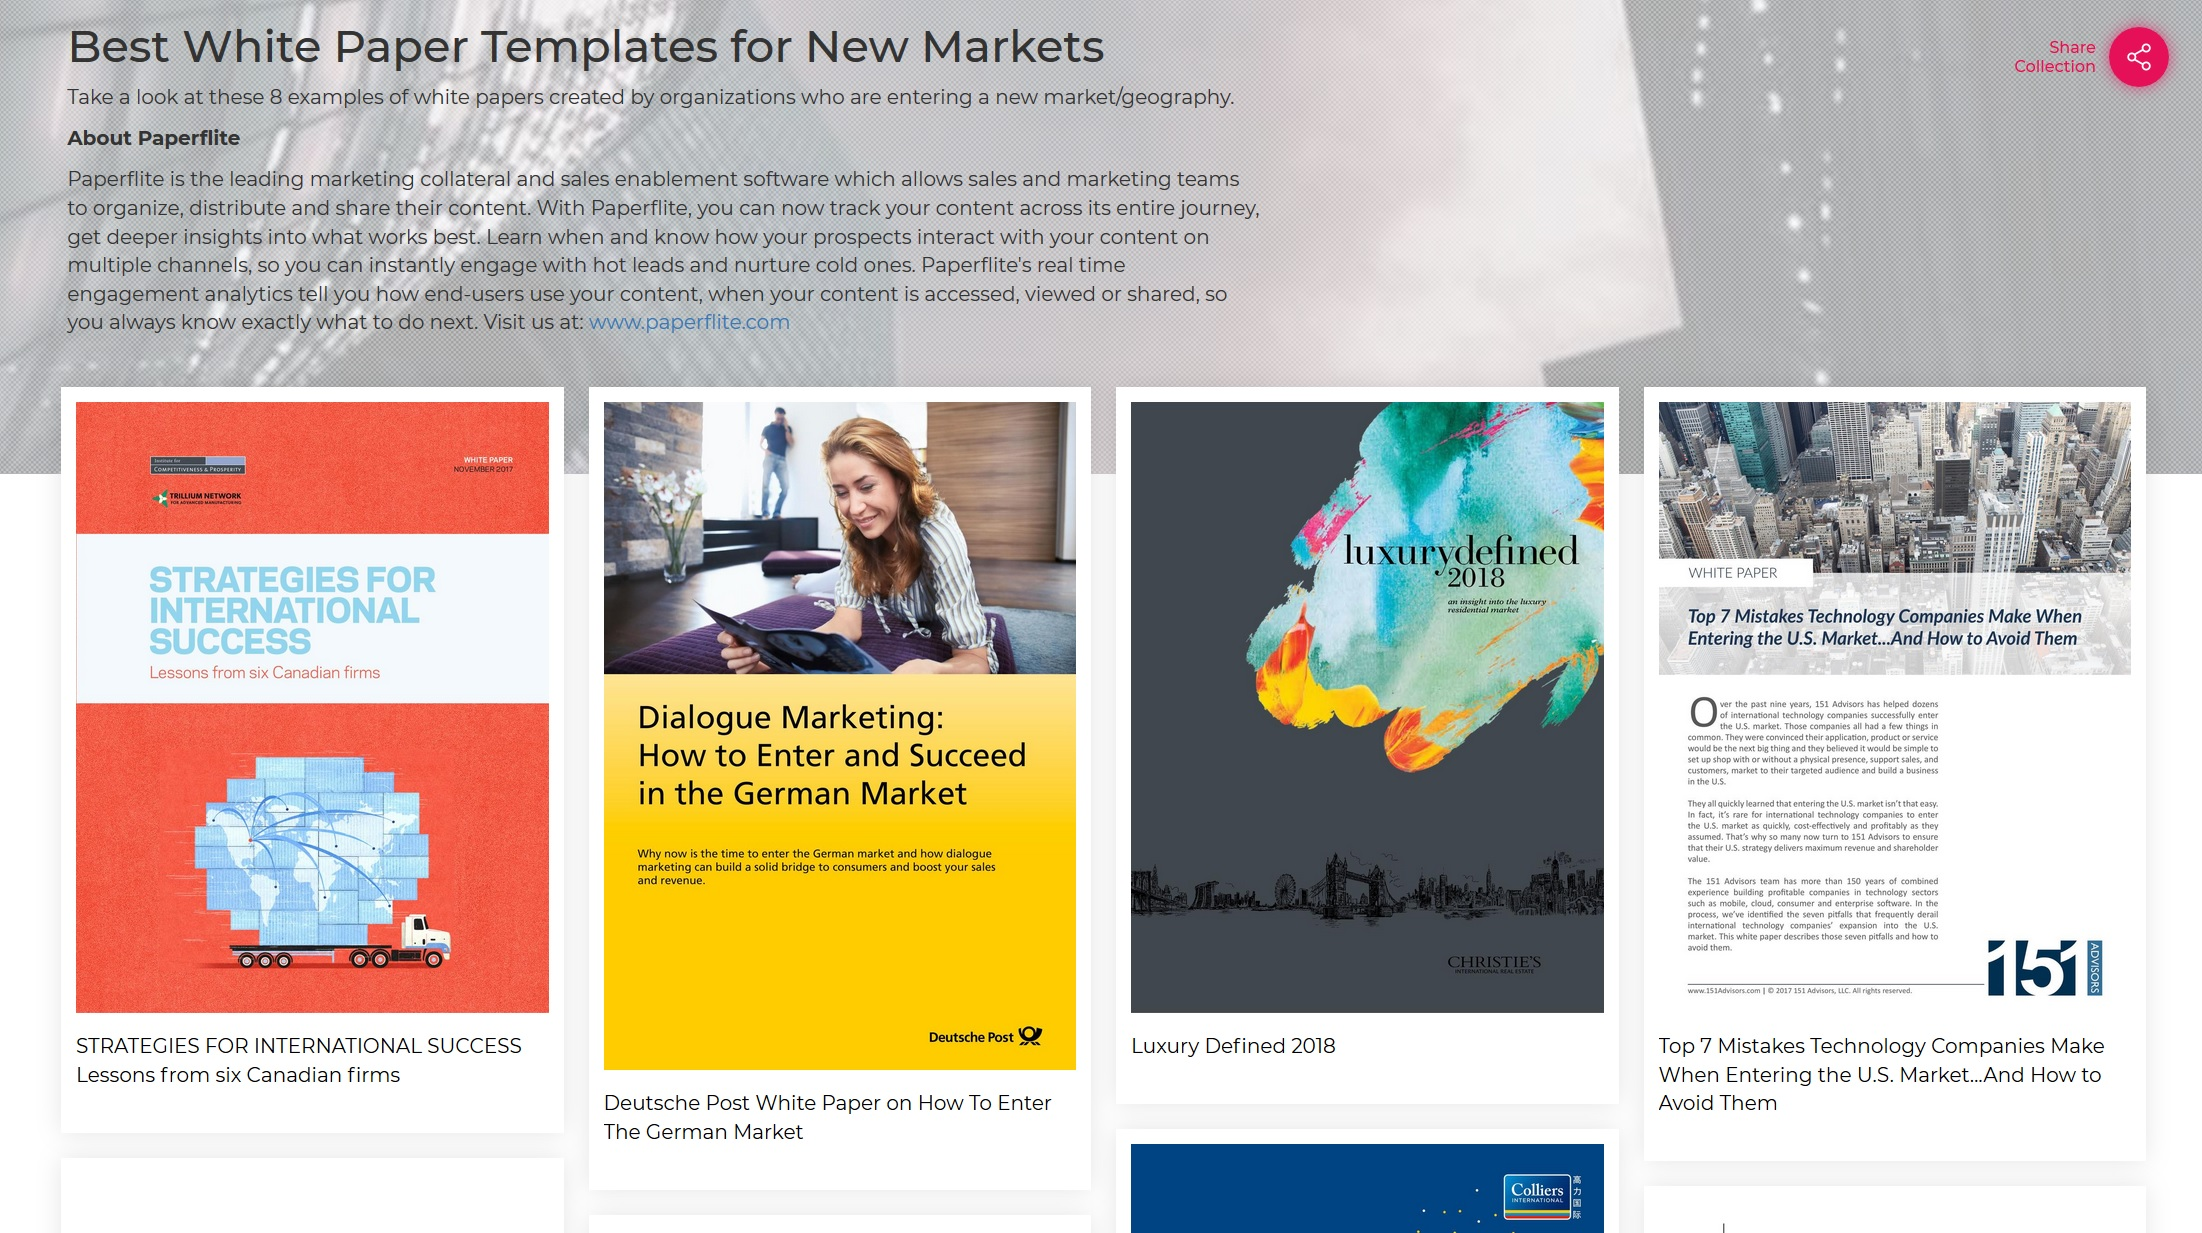 THE BEST WHITE PAPER EXAMPLES FOR NEW MARKETS